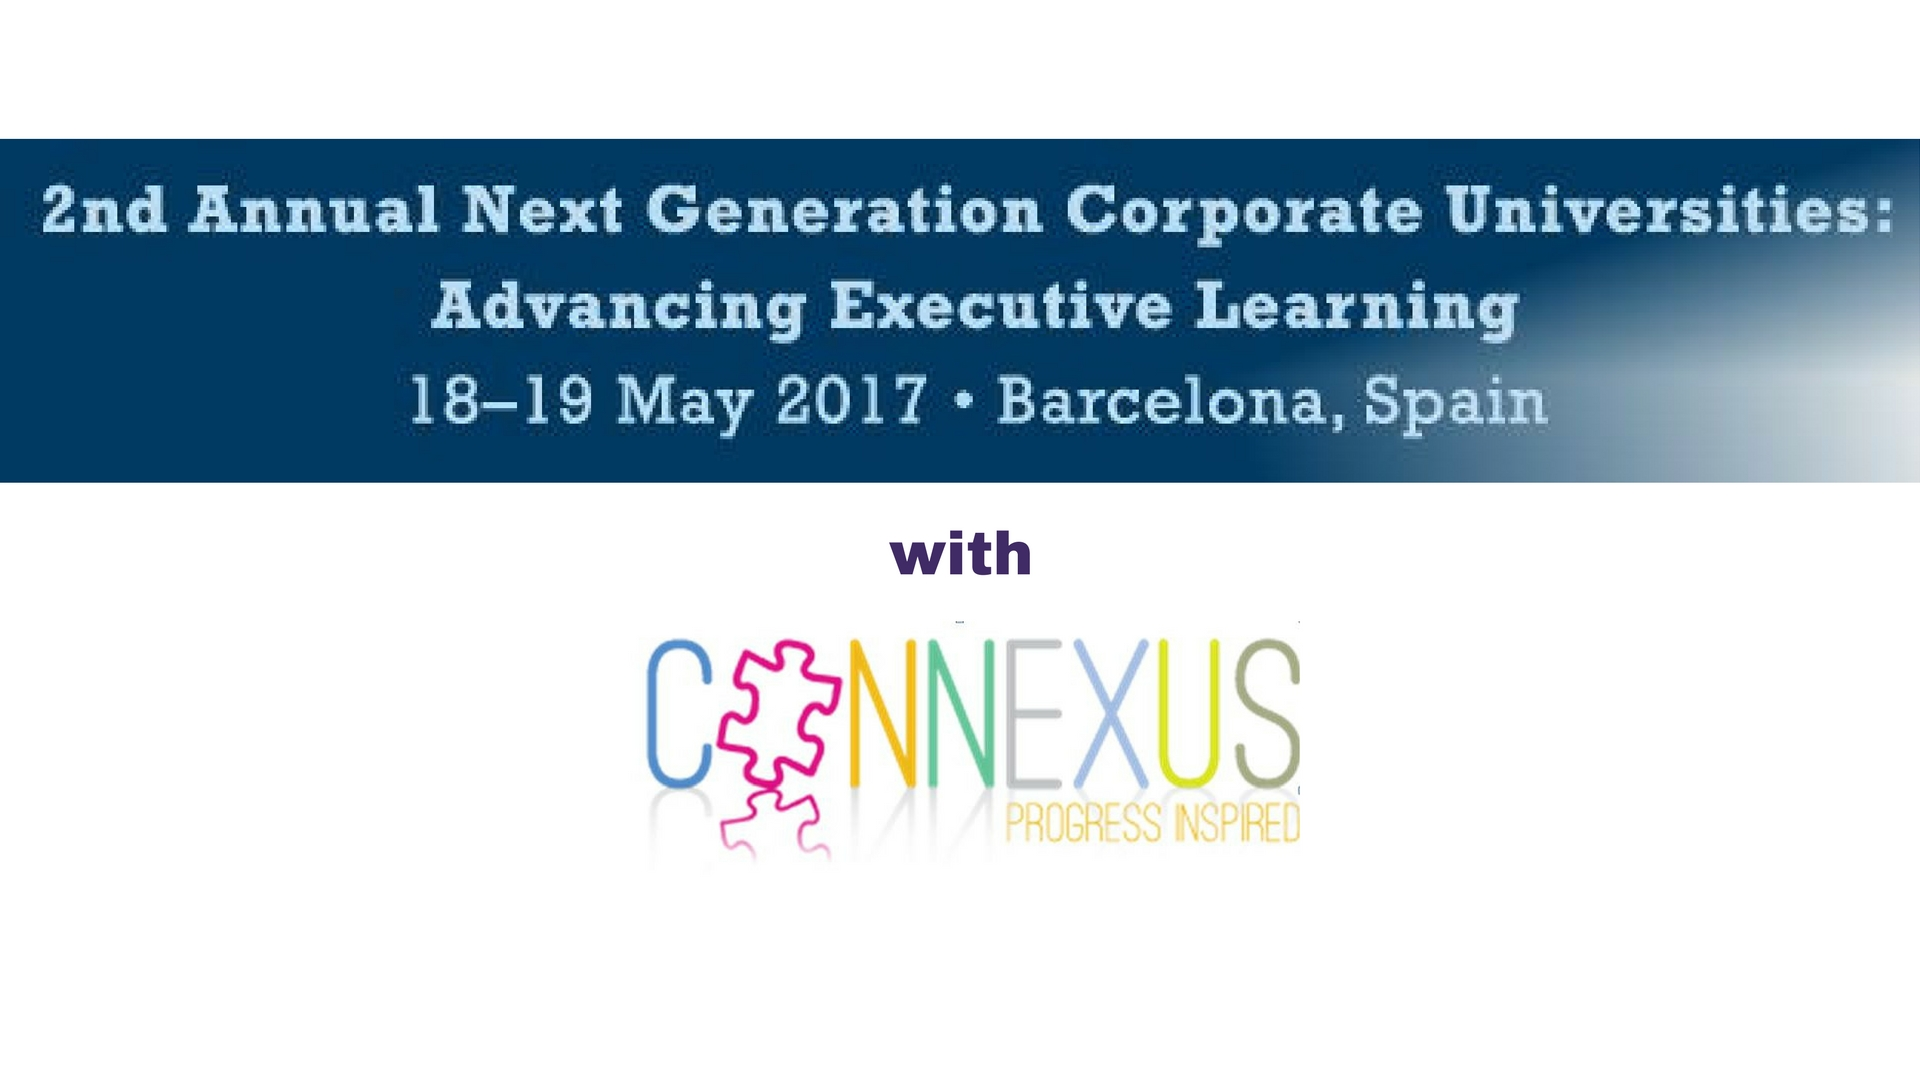 2nd Annual Next Generation Corporate Universities: Advancing Executive Learning